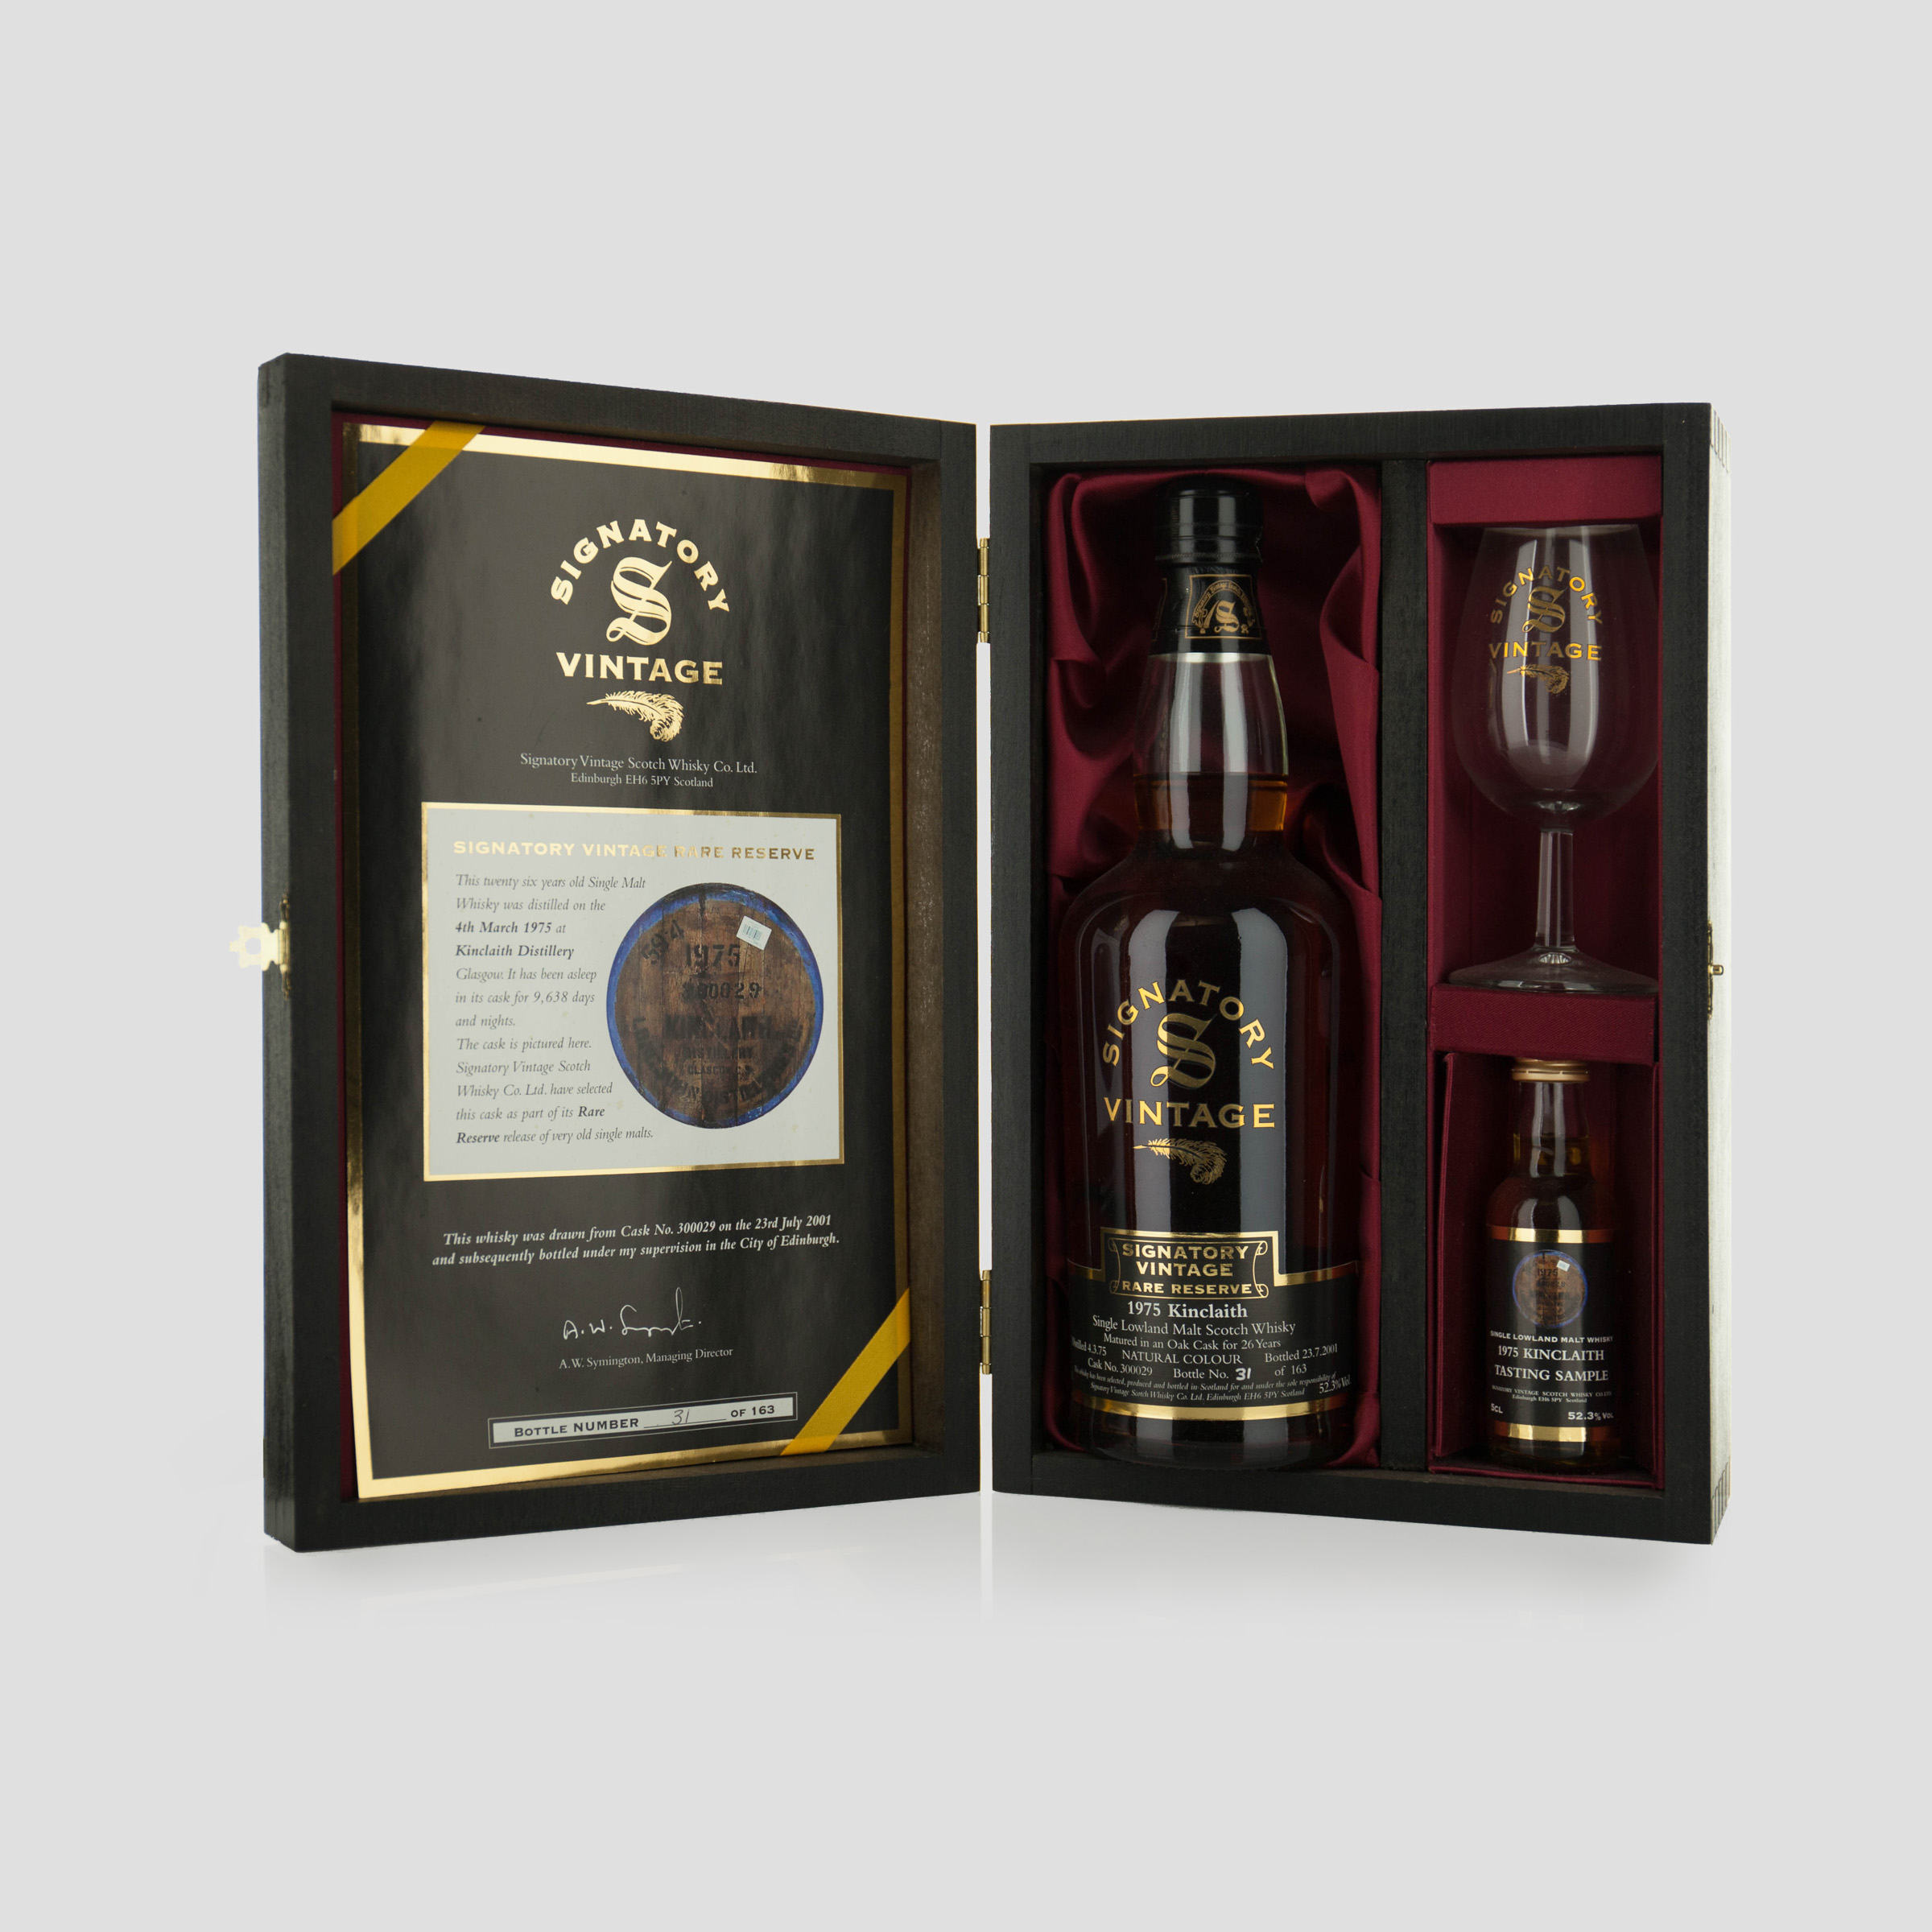 KINCLAITH SINGLE LOWLAND MALT SCOTCH WHISKY 26 YEARS (ONE 70 CL)